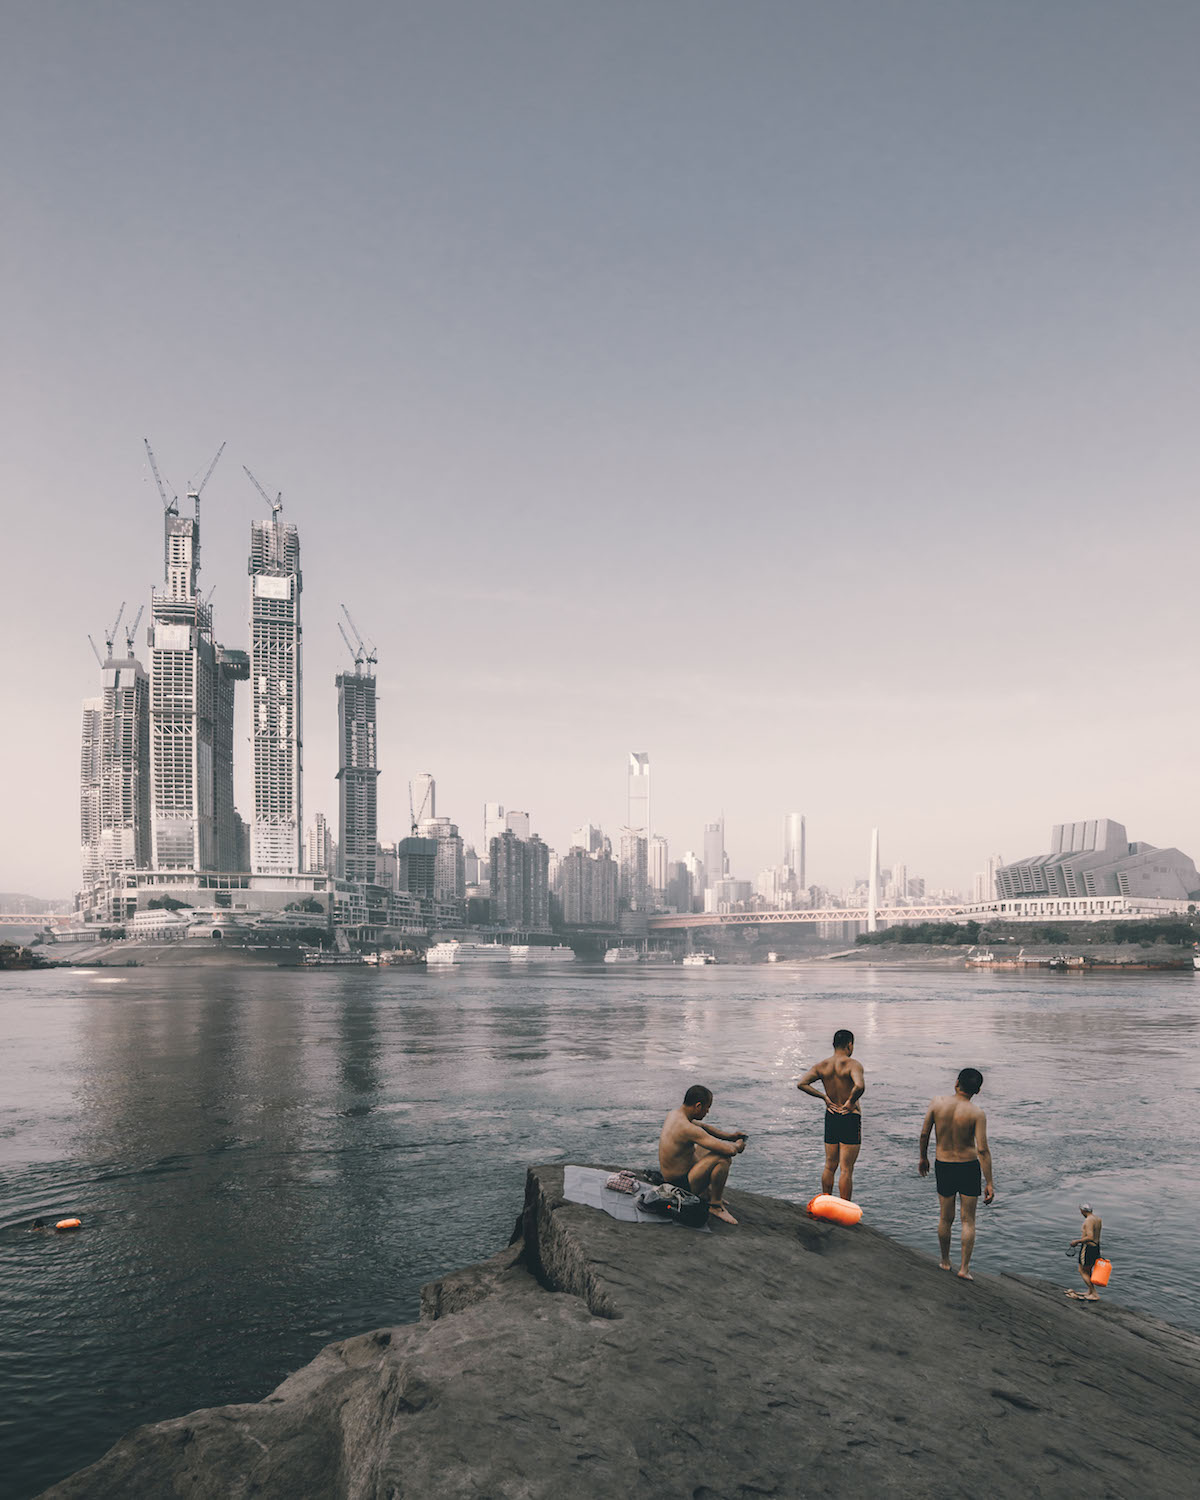 Architectural Photography Awards 2018 Shortlist